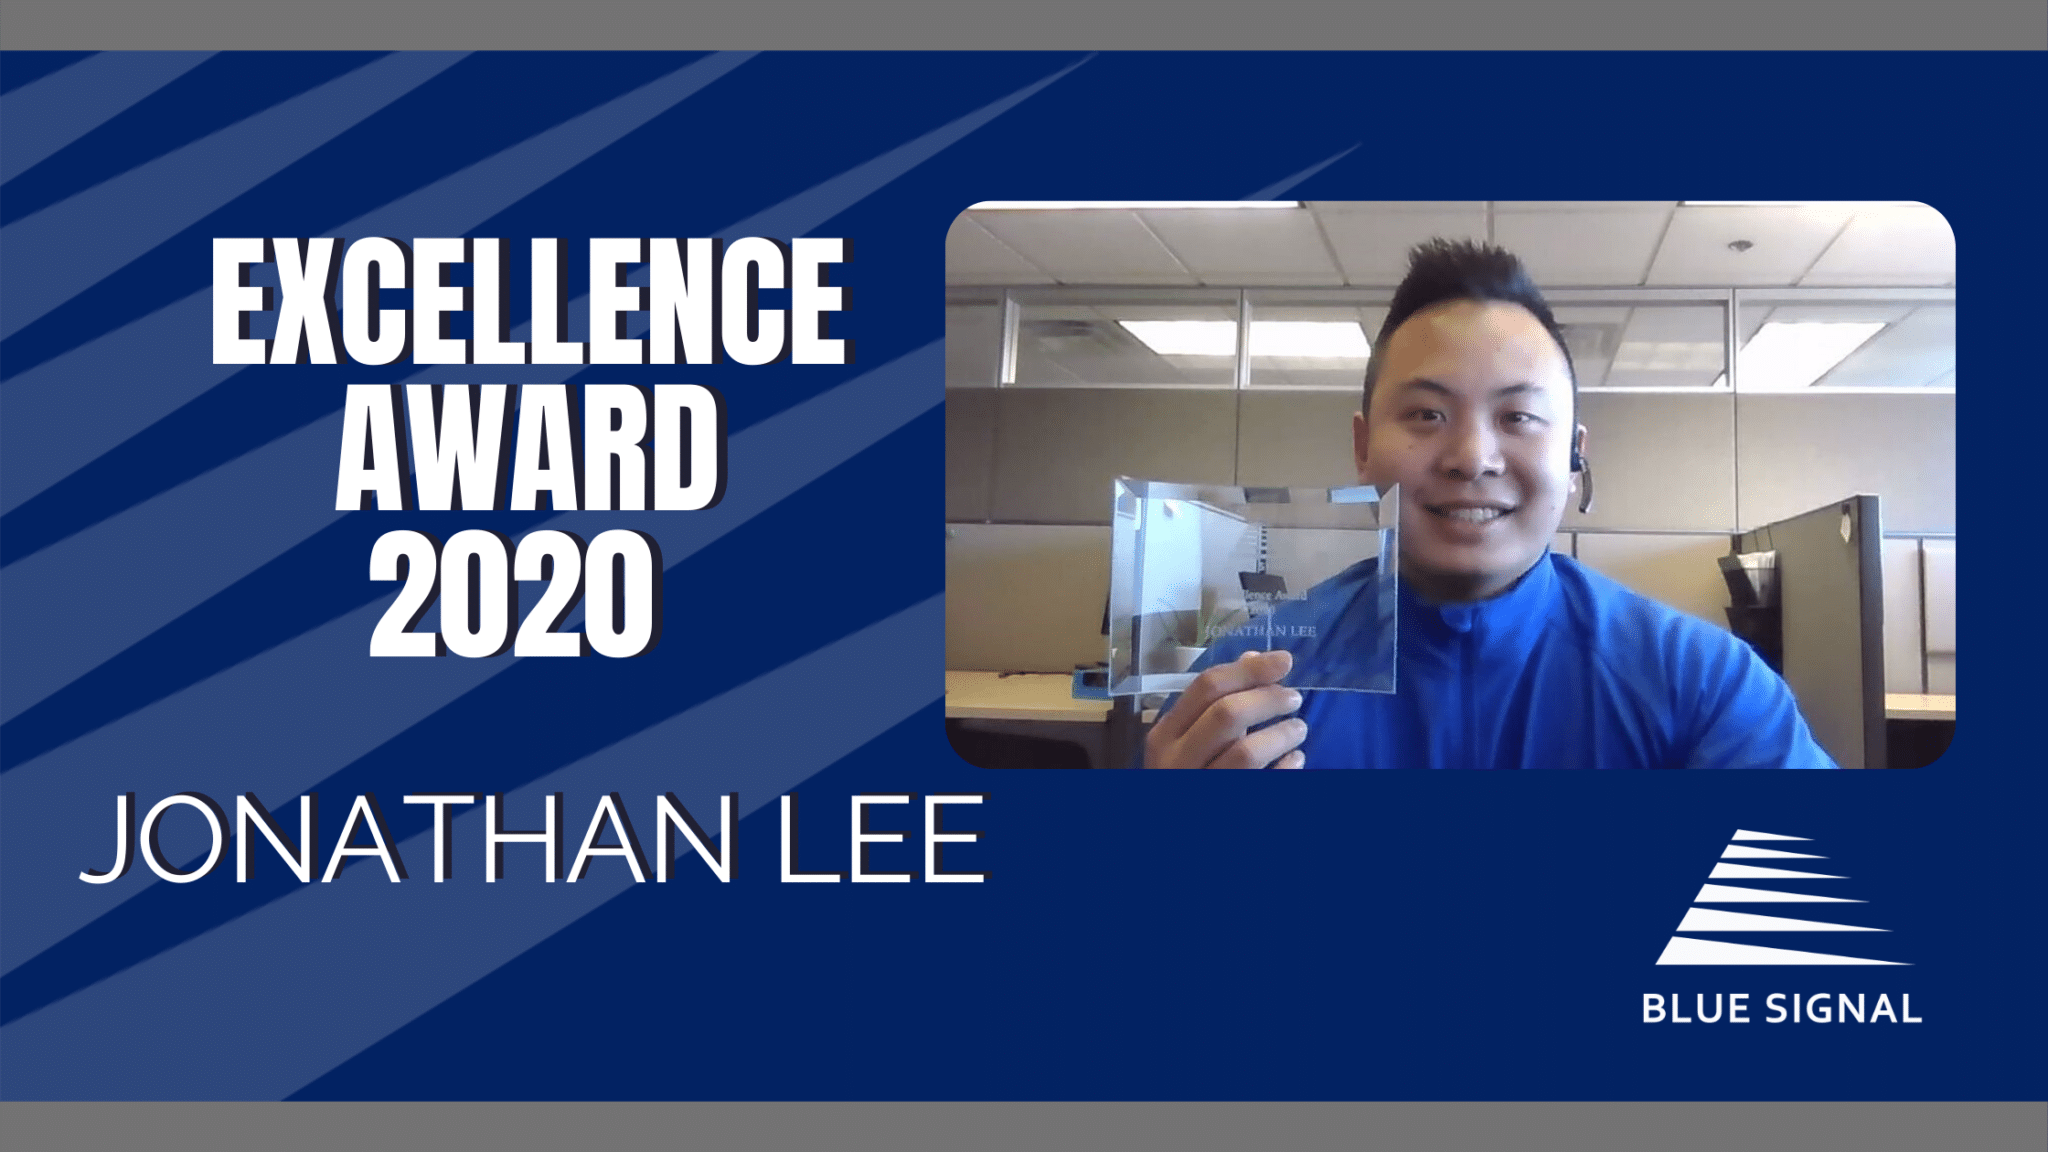 Record-Breaking 2020 Awards - Jonathan Lee